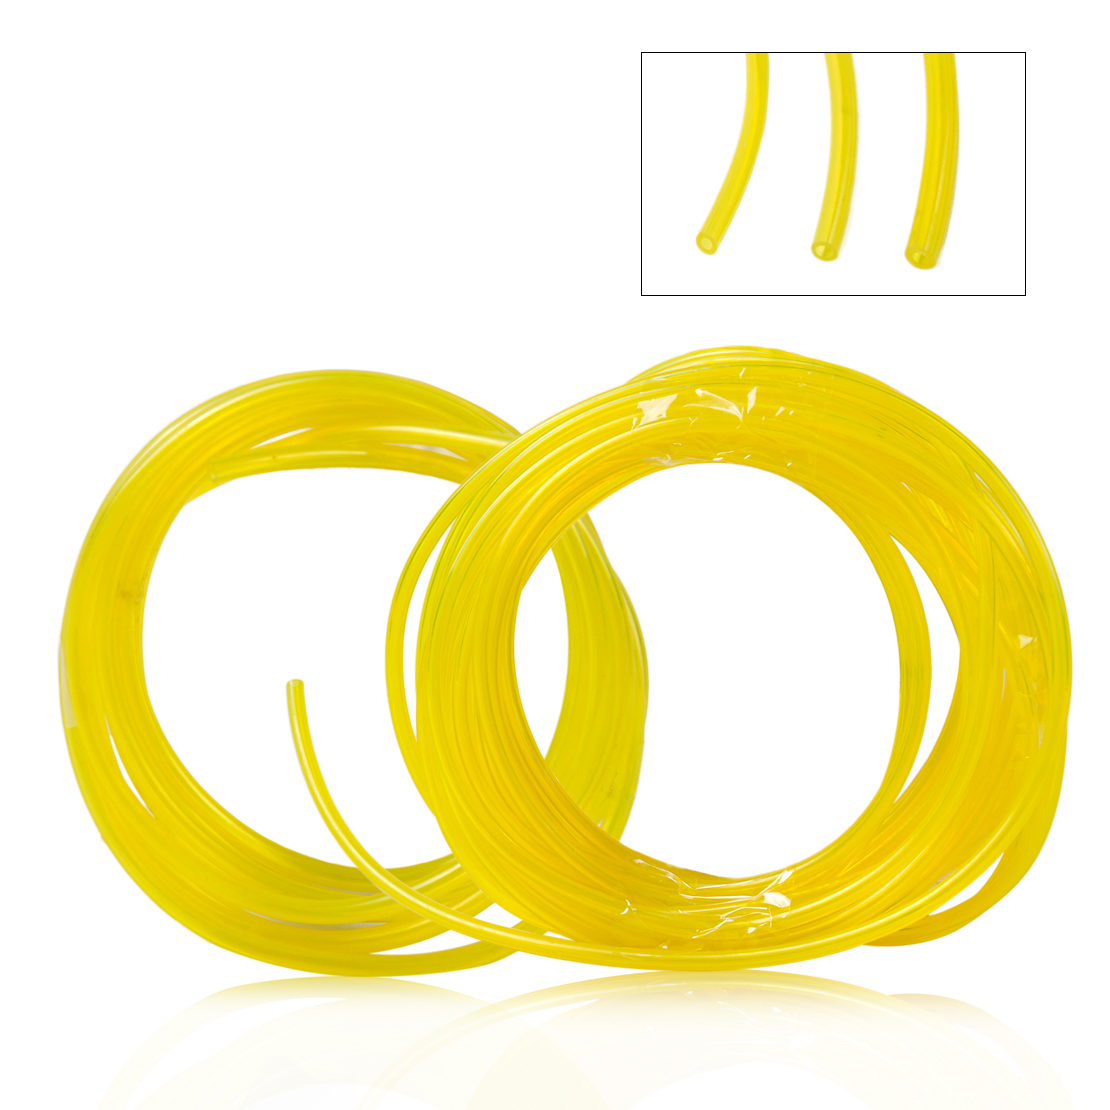 """New 3m 10ft Soft Petrol Blower Fuel Gas Lines Pipe Hose for Trimmer Chainsaws Blowers Pressure Washers 2.5x5mm 3x5mm 3x6mm 1/8""""(China (Mainland))"""